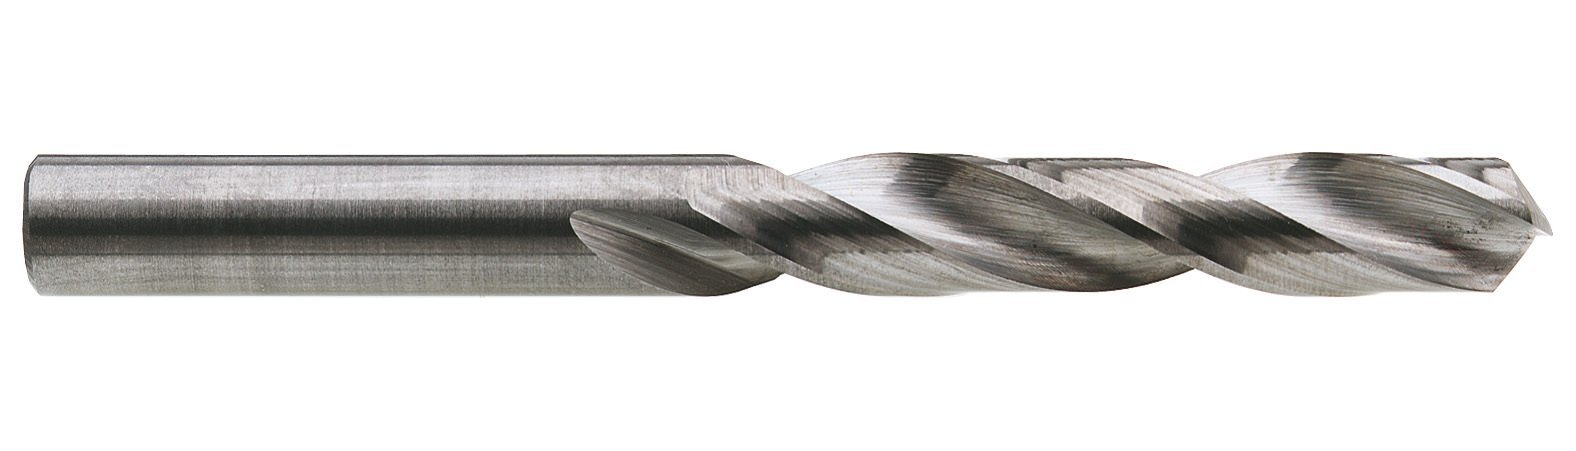 #11 Drill Bit Solid Carbide 118° Standard Point, USA Made, Number 11 (.191''), 50882